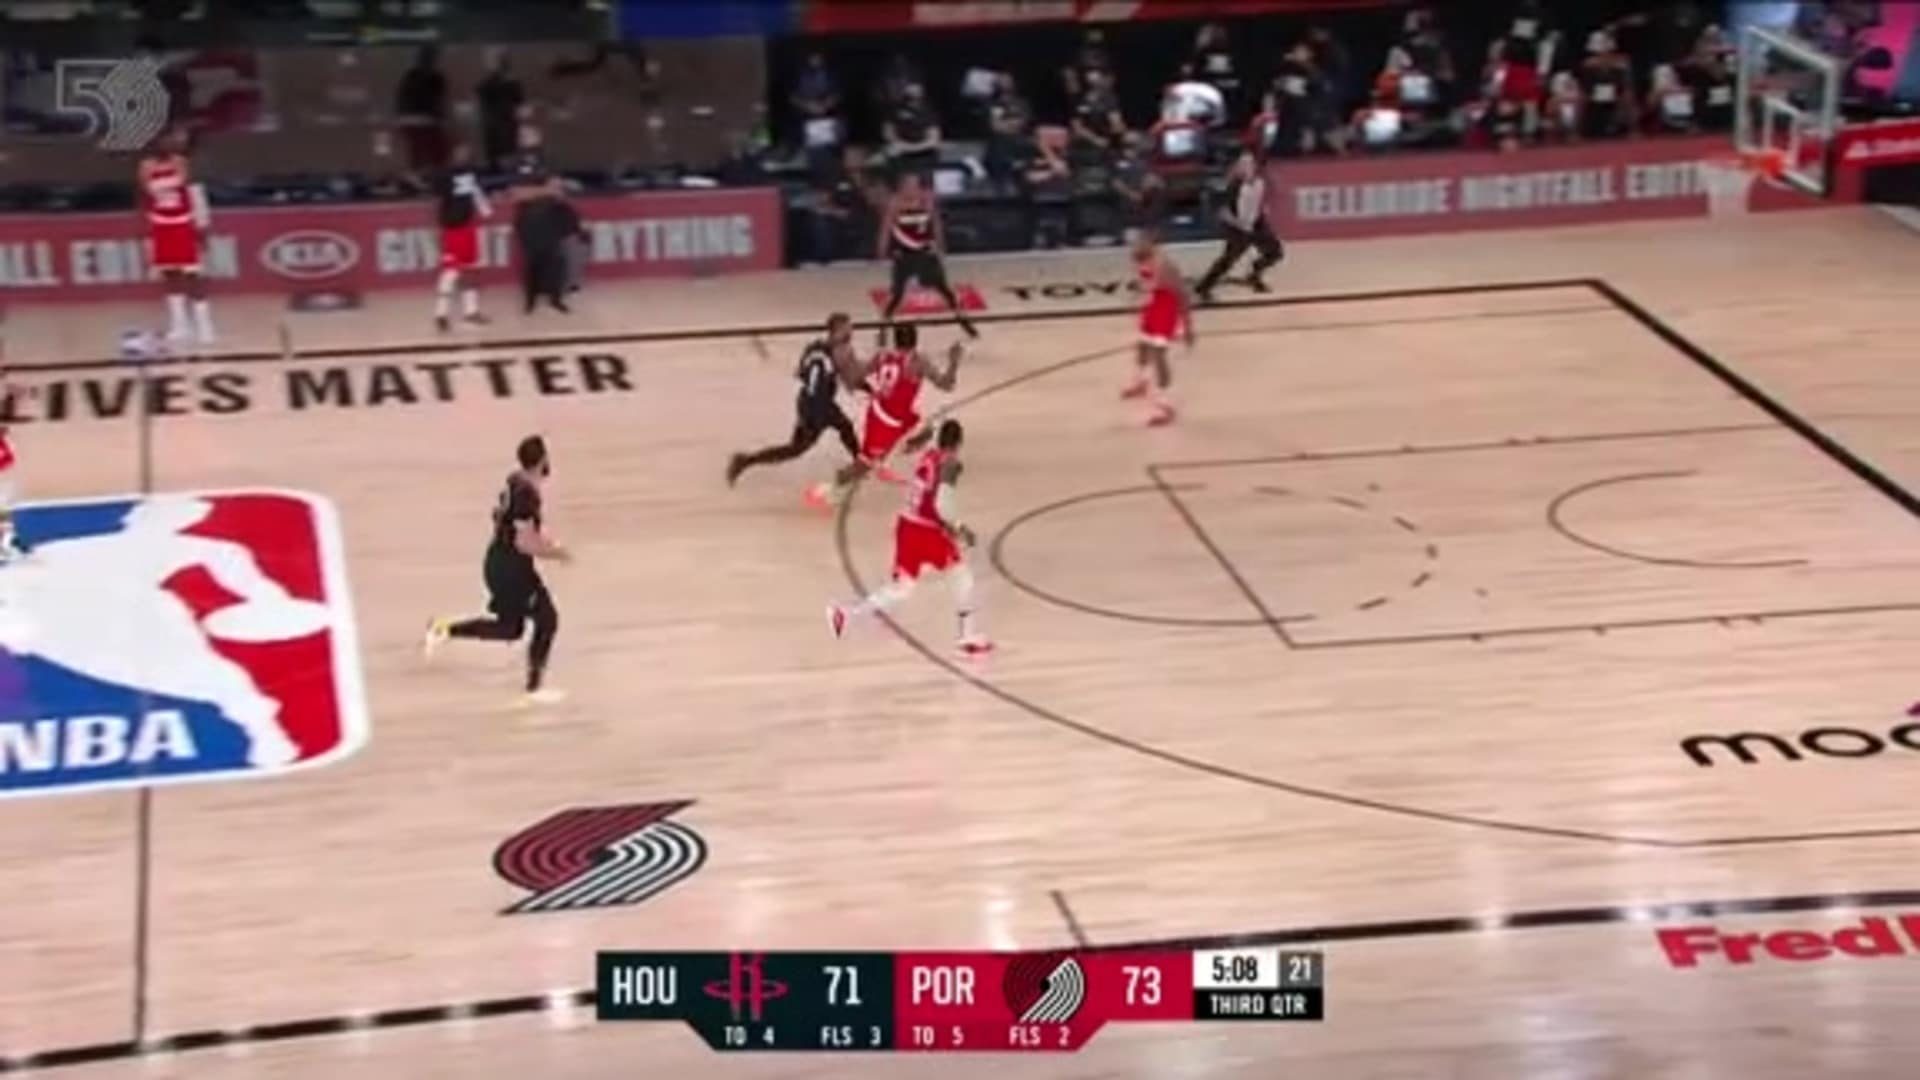 Lillard is heating up after this and-1